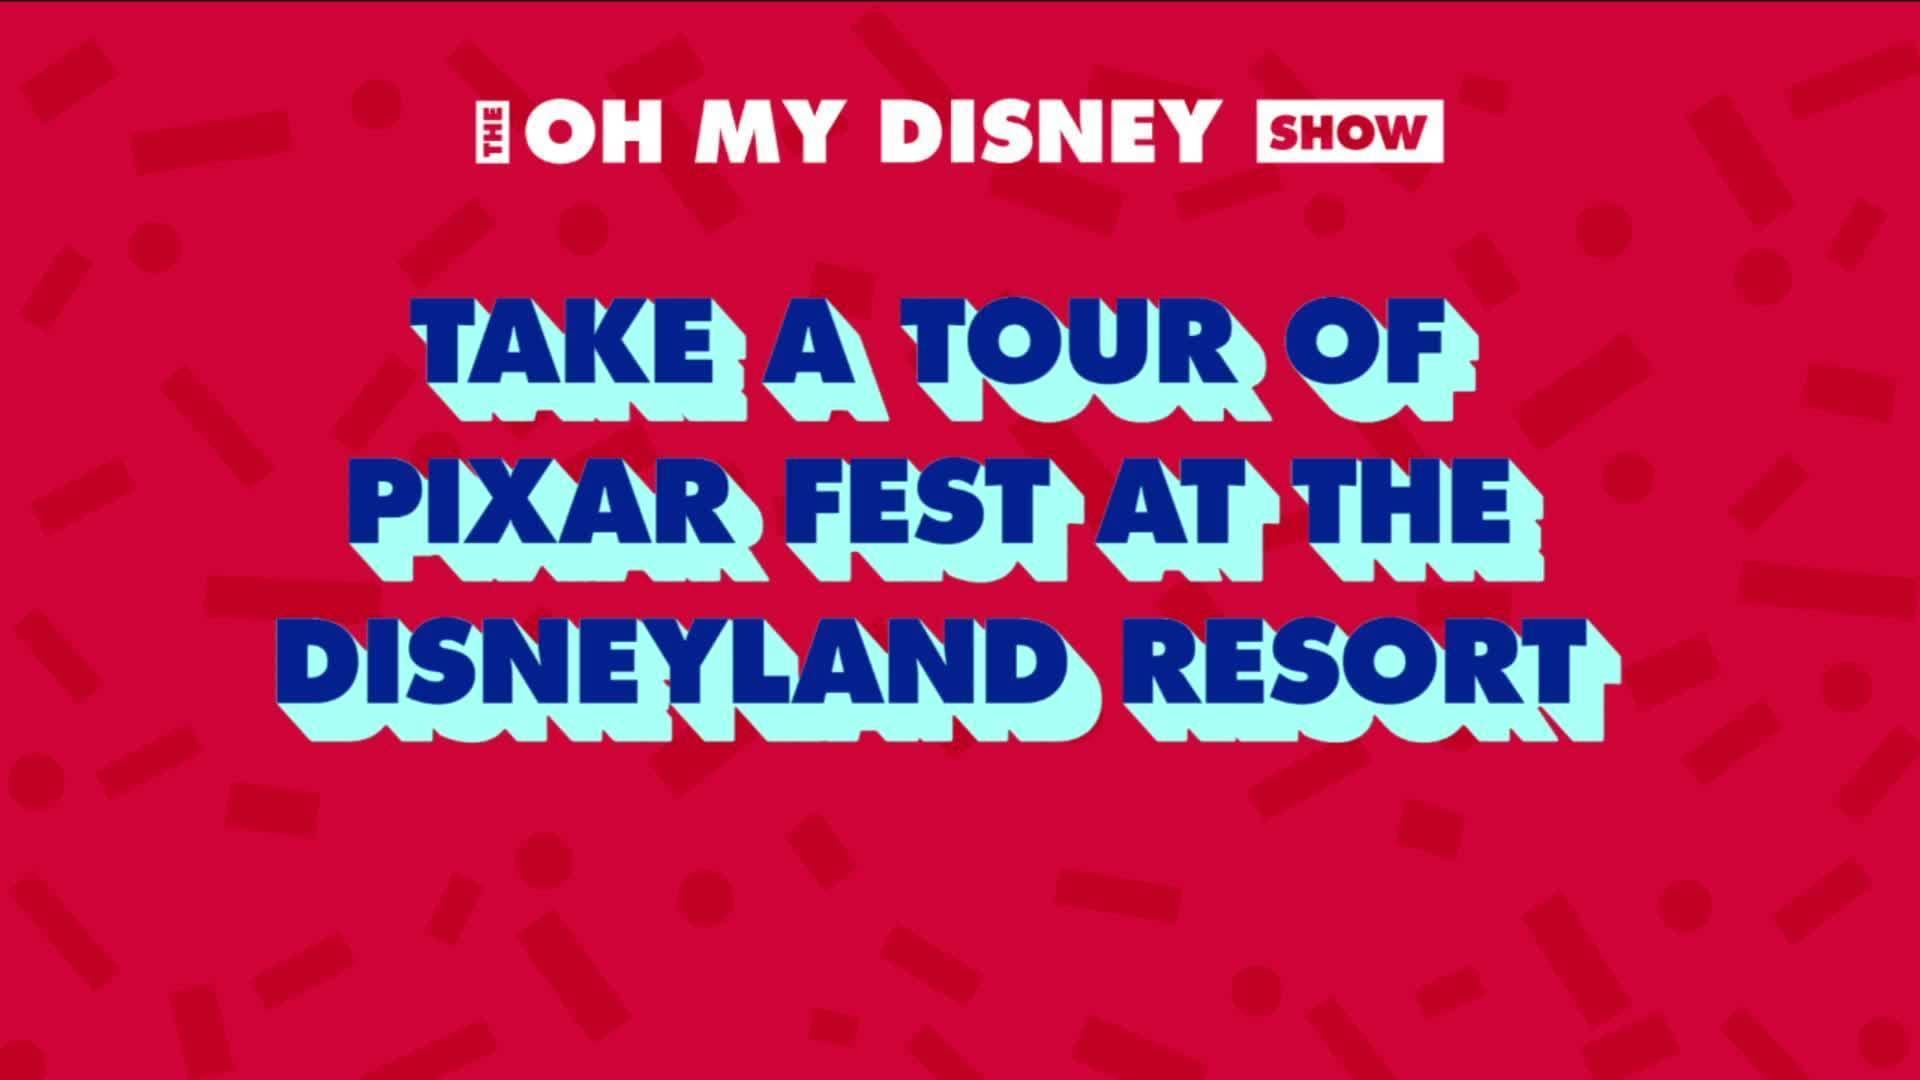 An Inside Look at Pixar Fest in Disneyland Resort | Oh My Disney Show by Oh My Disney